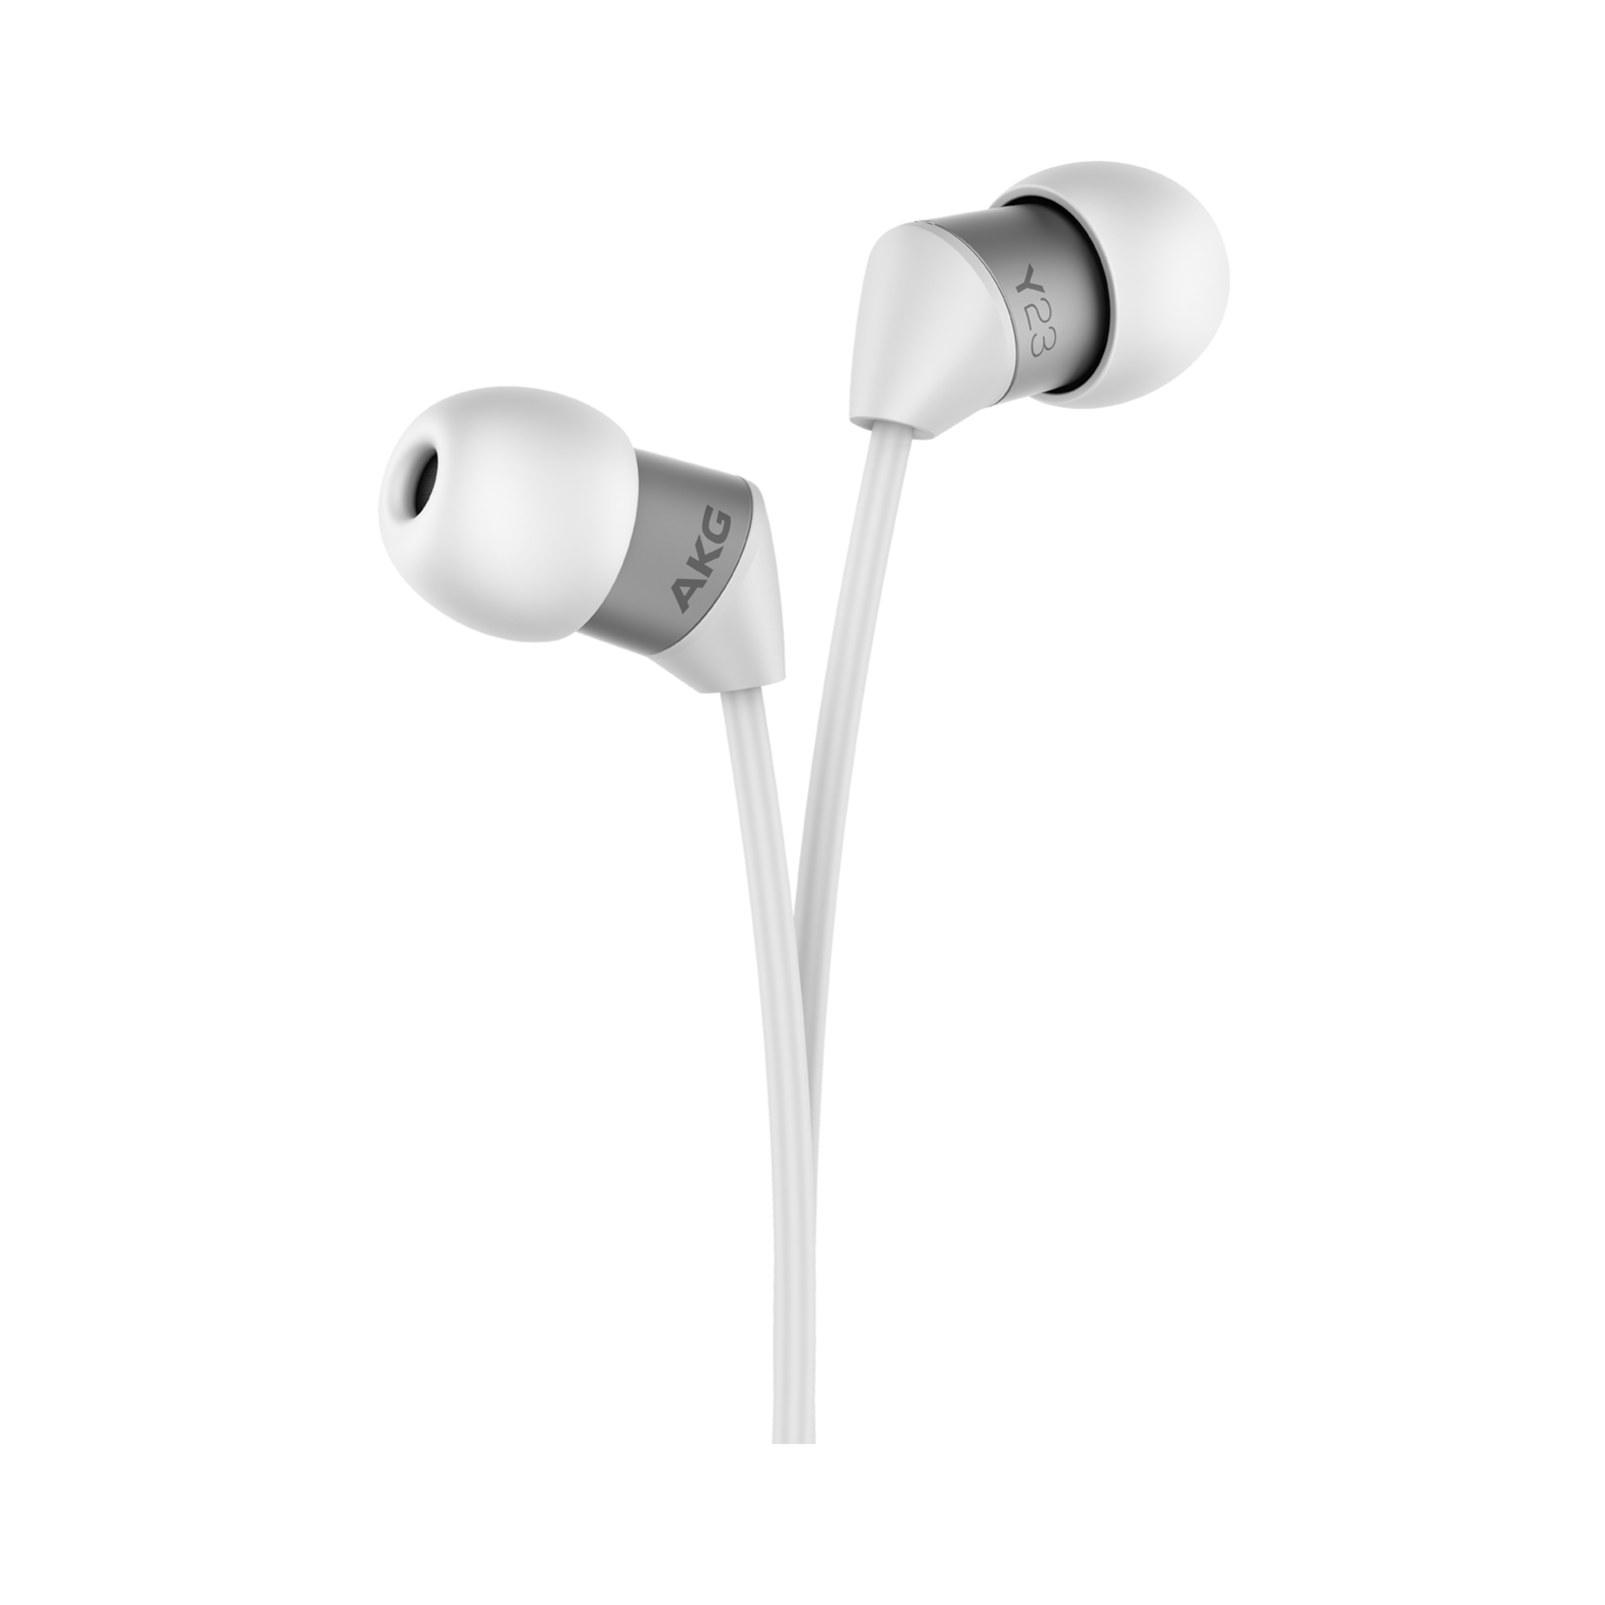 Y23U - White - The smallest in-ear headphones with universal remote and microphone - Detailshot 1